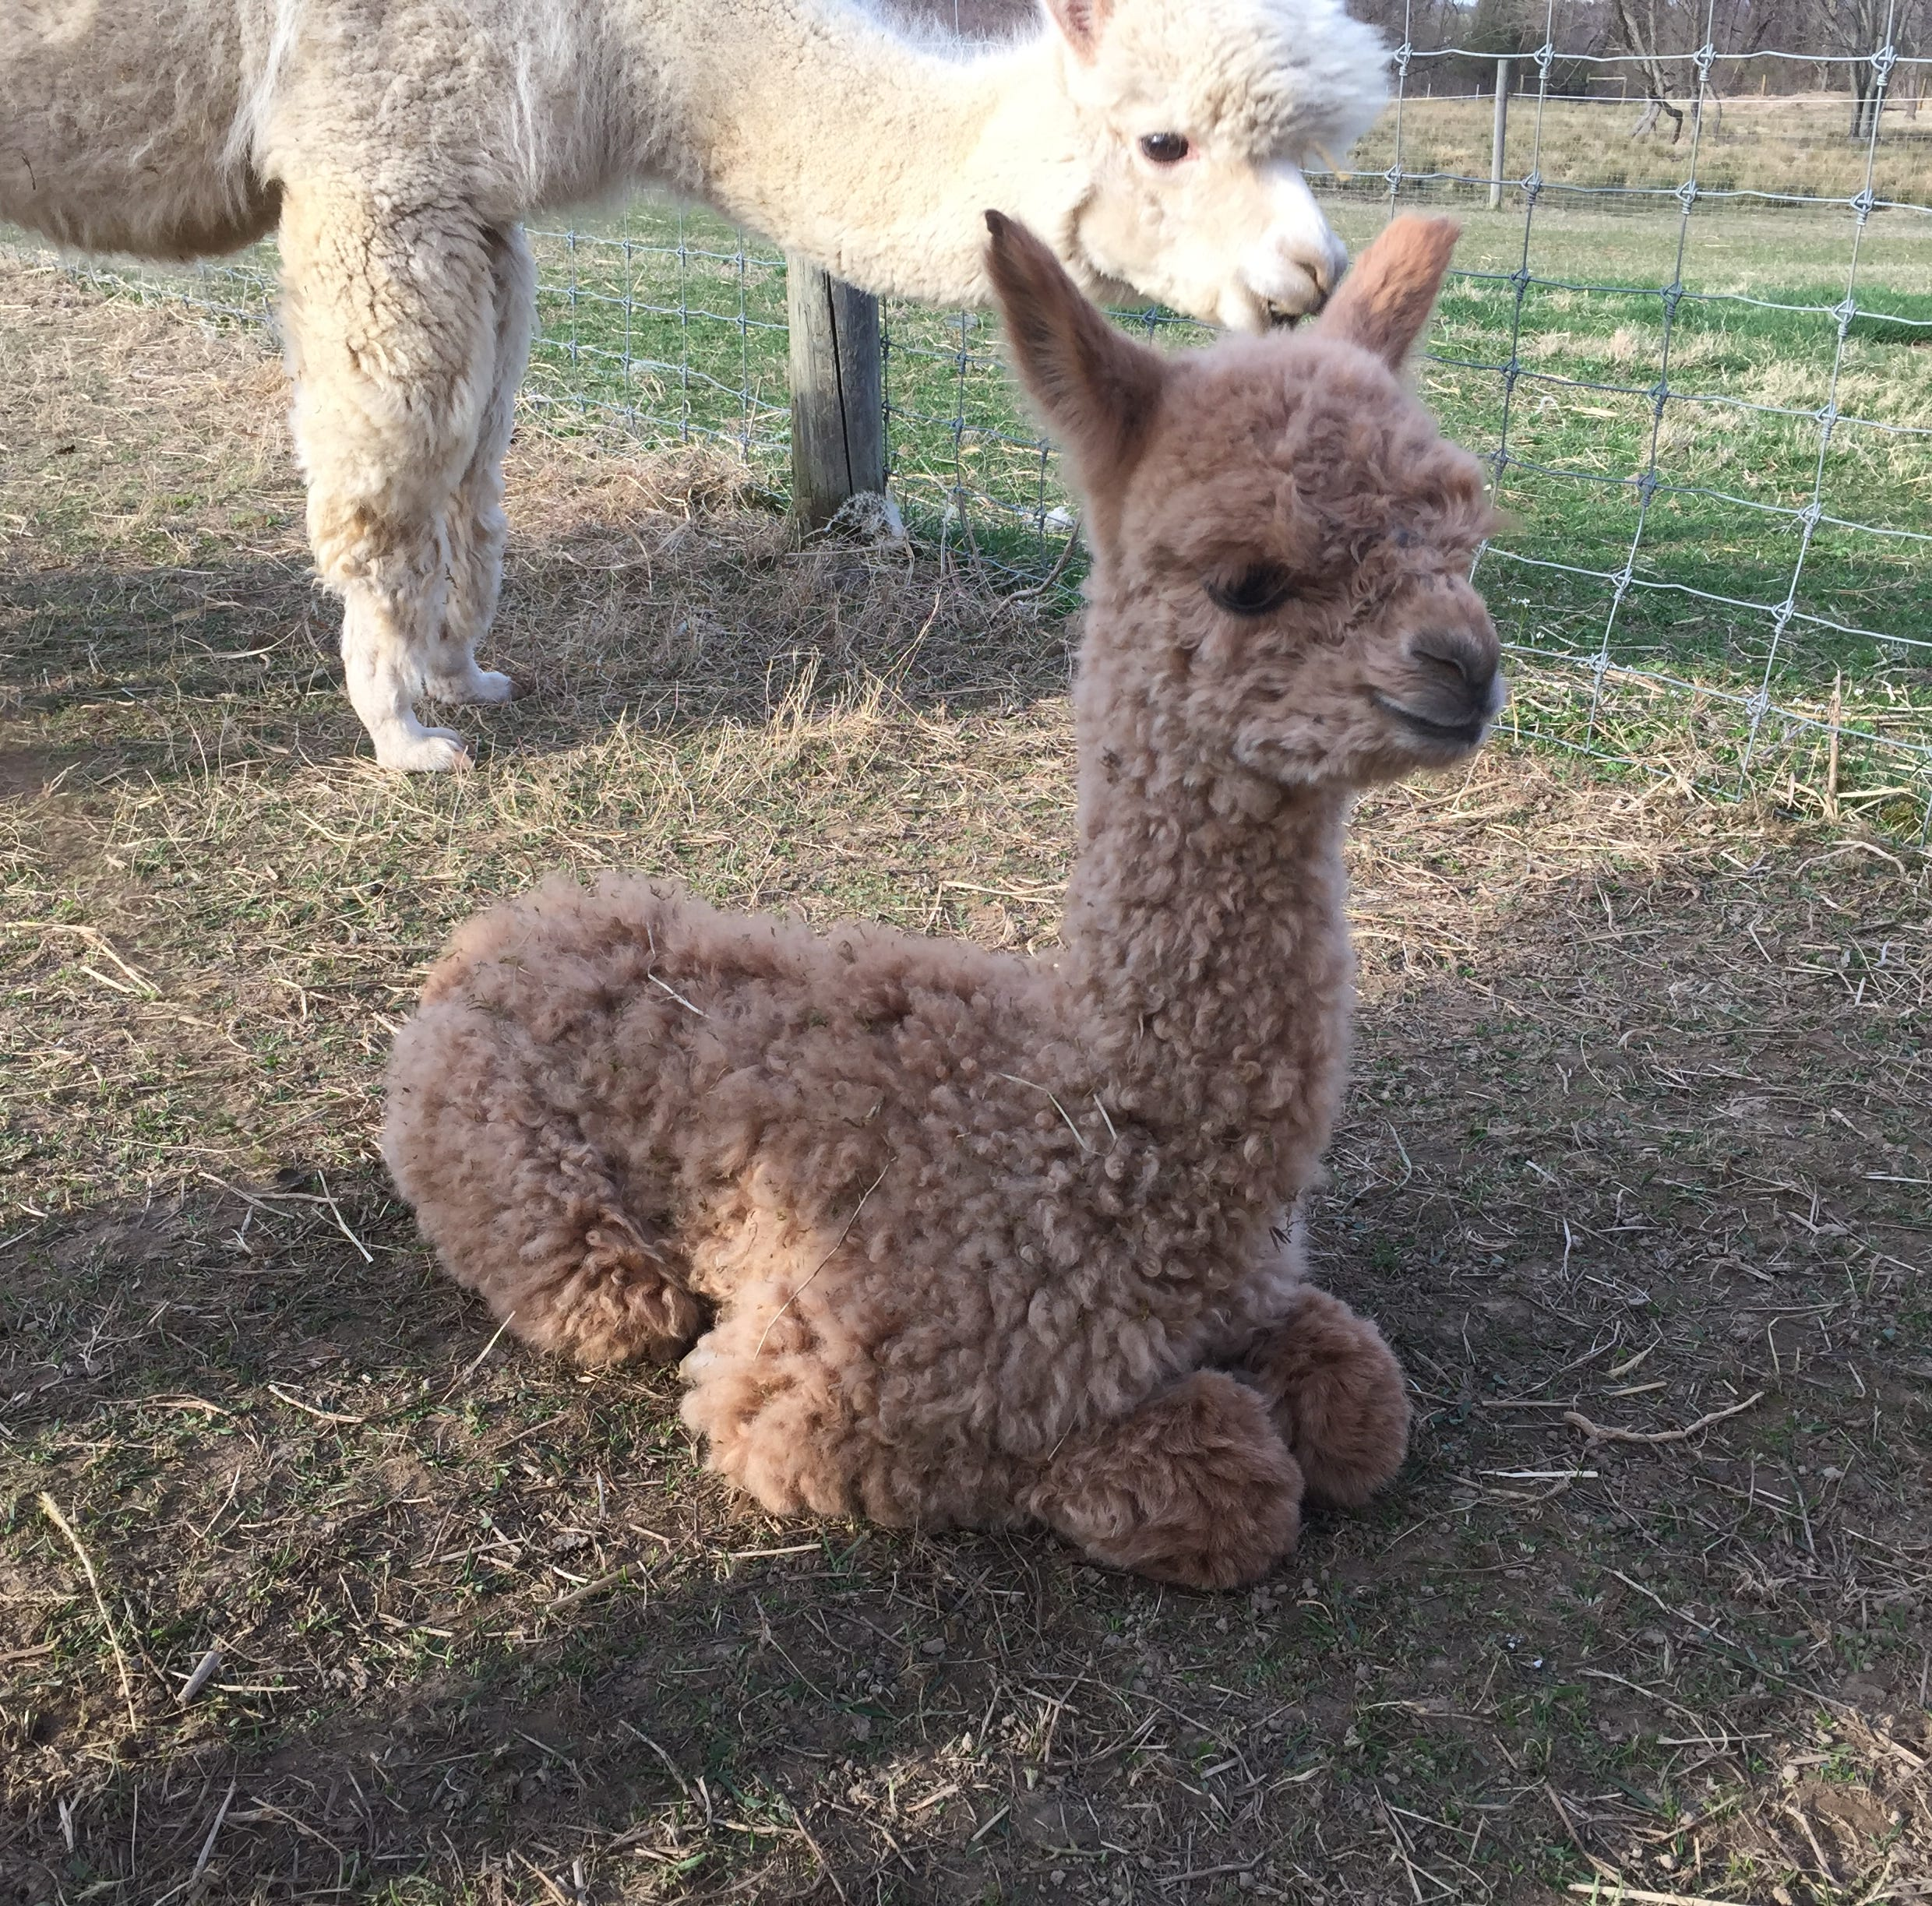 Fuzzy, adorable baby alpaca brings joy to farm days after 4 alpacas killed in dog attack